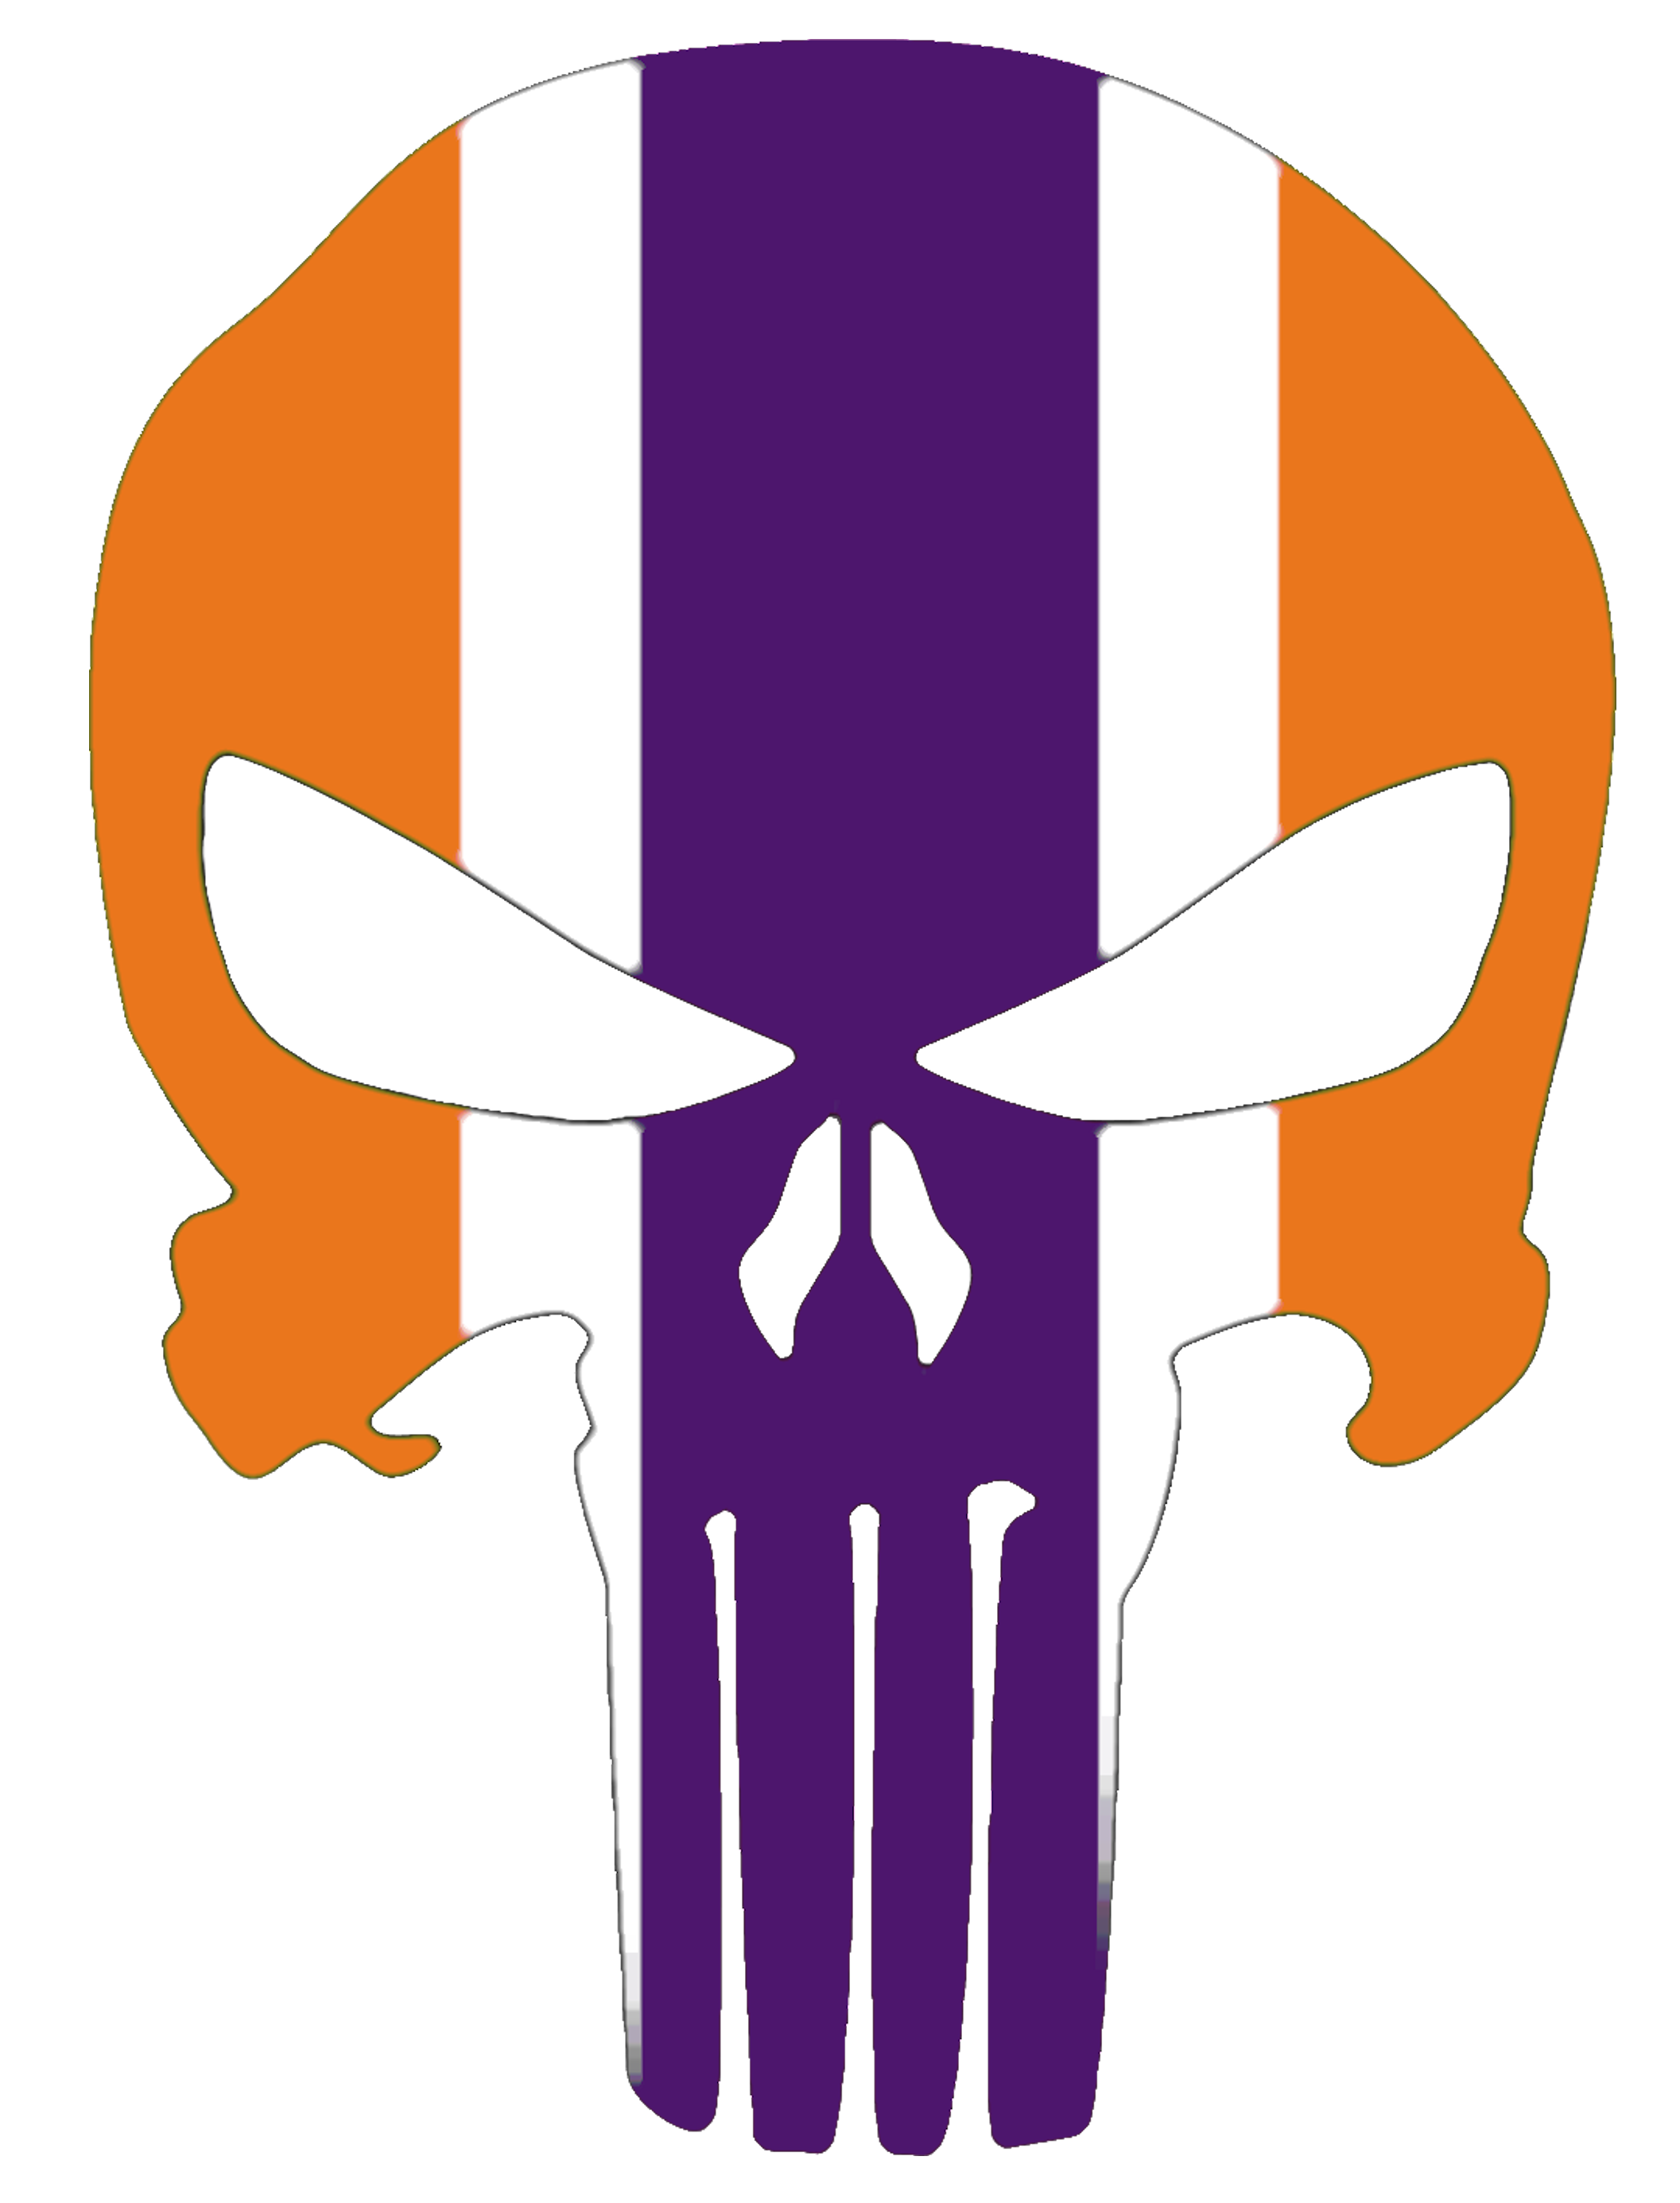 Skull player football clipart svg black and white download Clemson Football Clipart at GetDrawings.com | Free for personal use ... svg black and white download